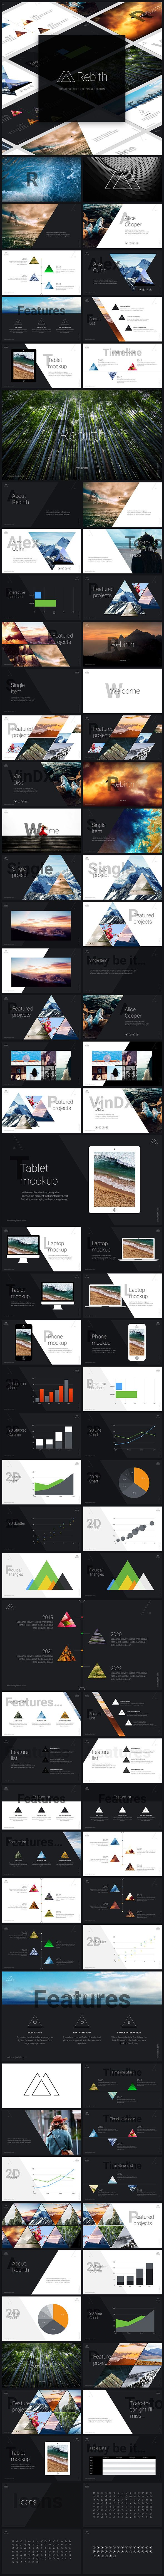 Rebirth Keynote Presentation Template. Download here…